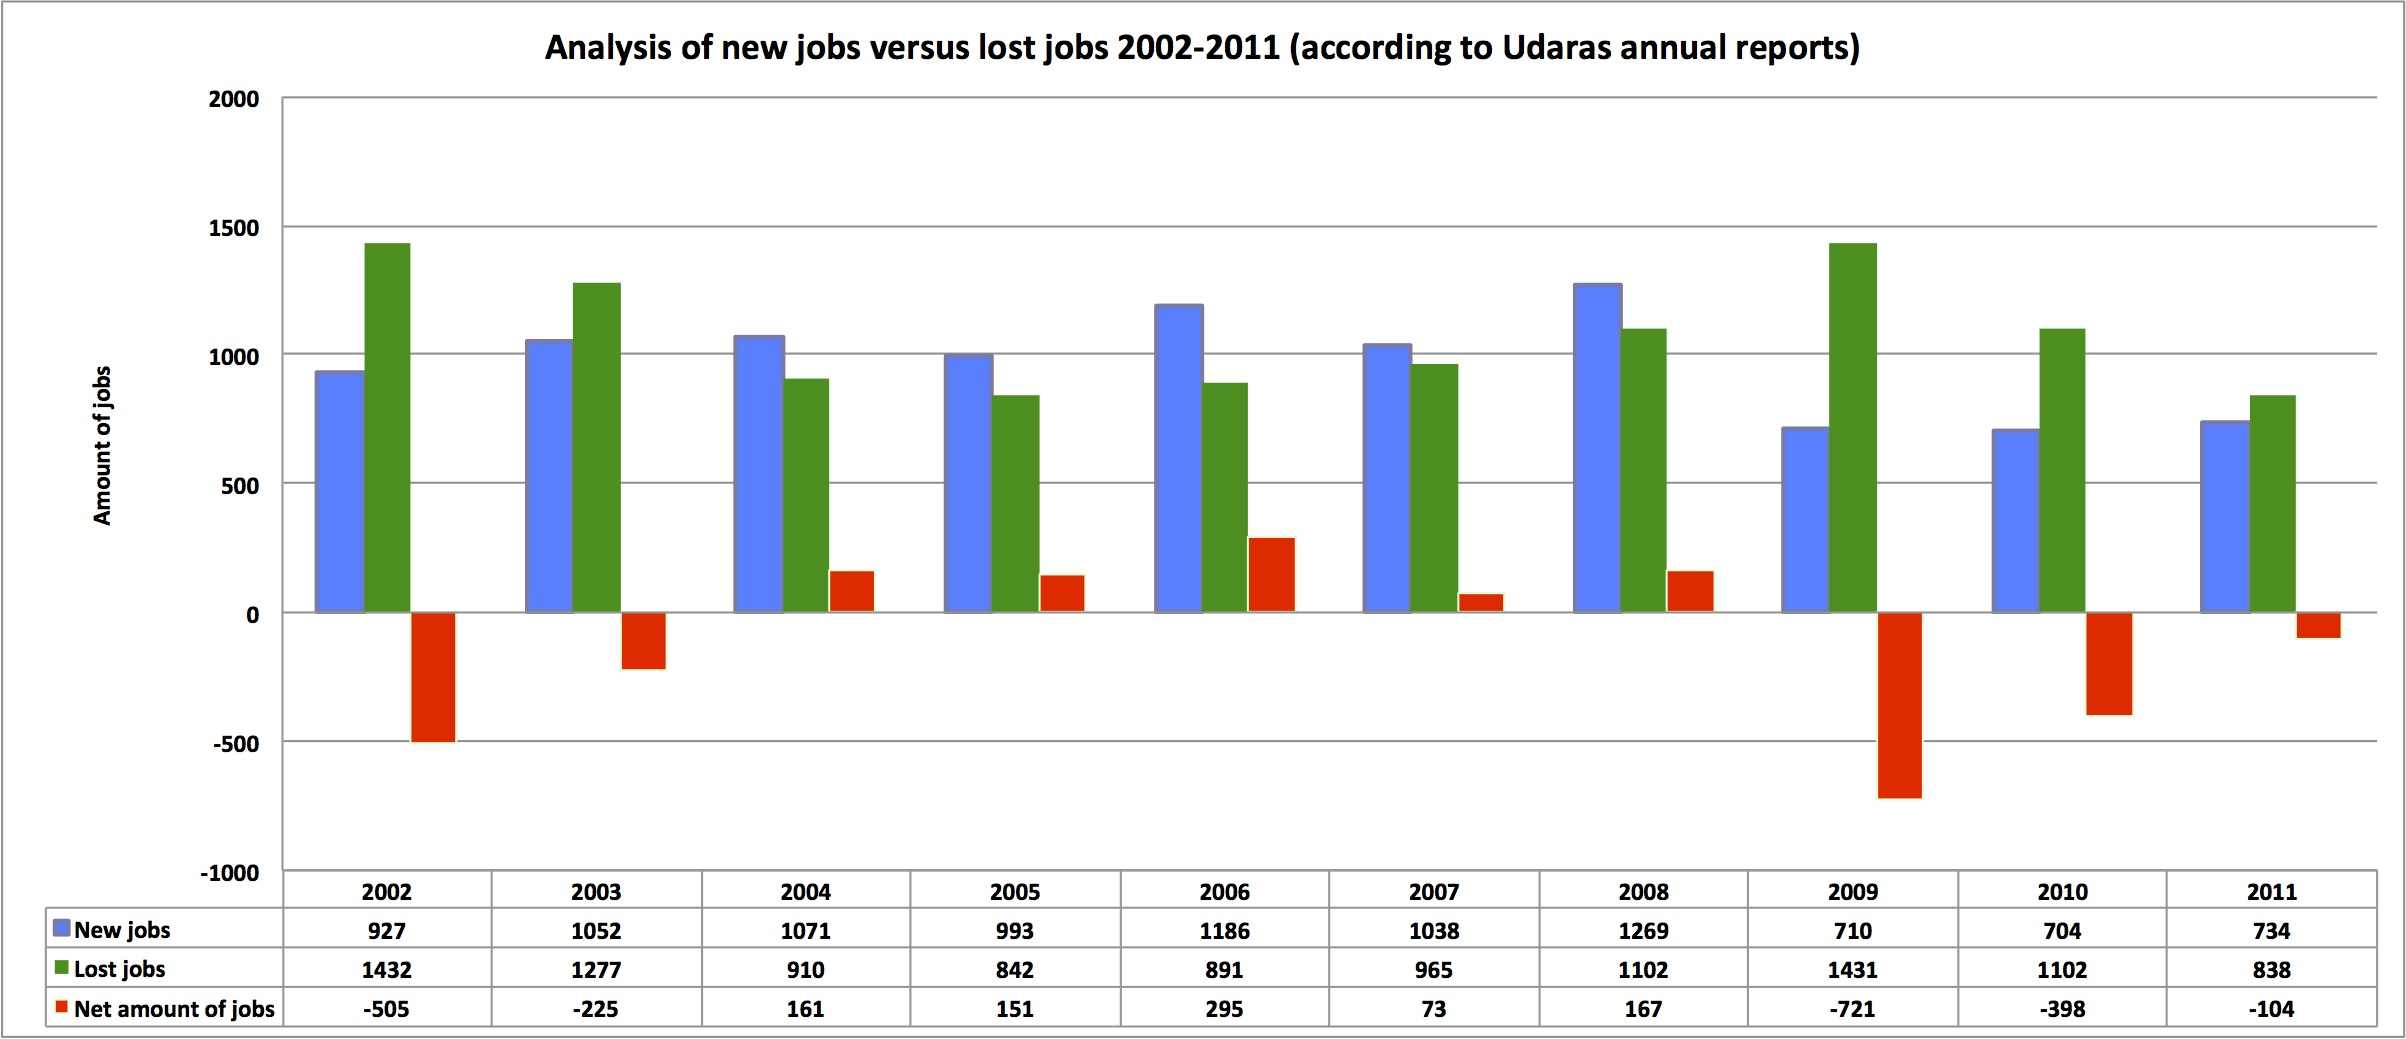 New jobs versus lost jobs